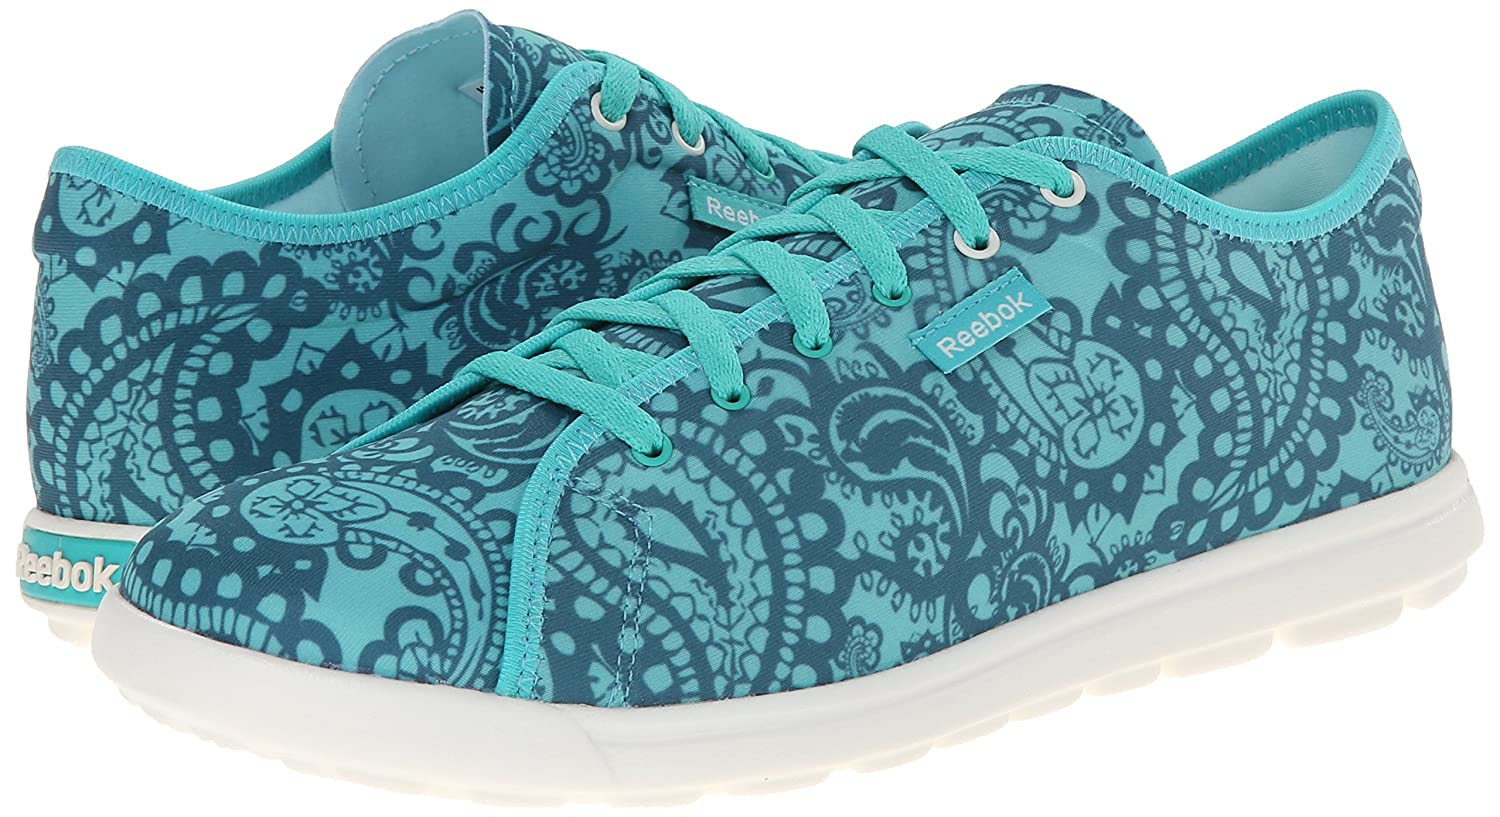 reebok women's sneakers